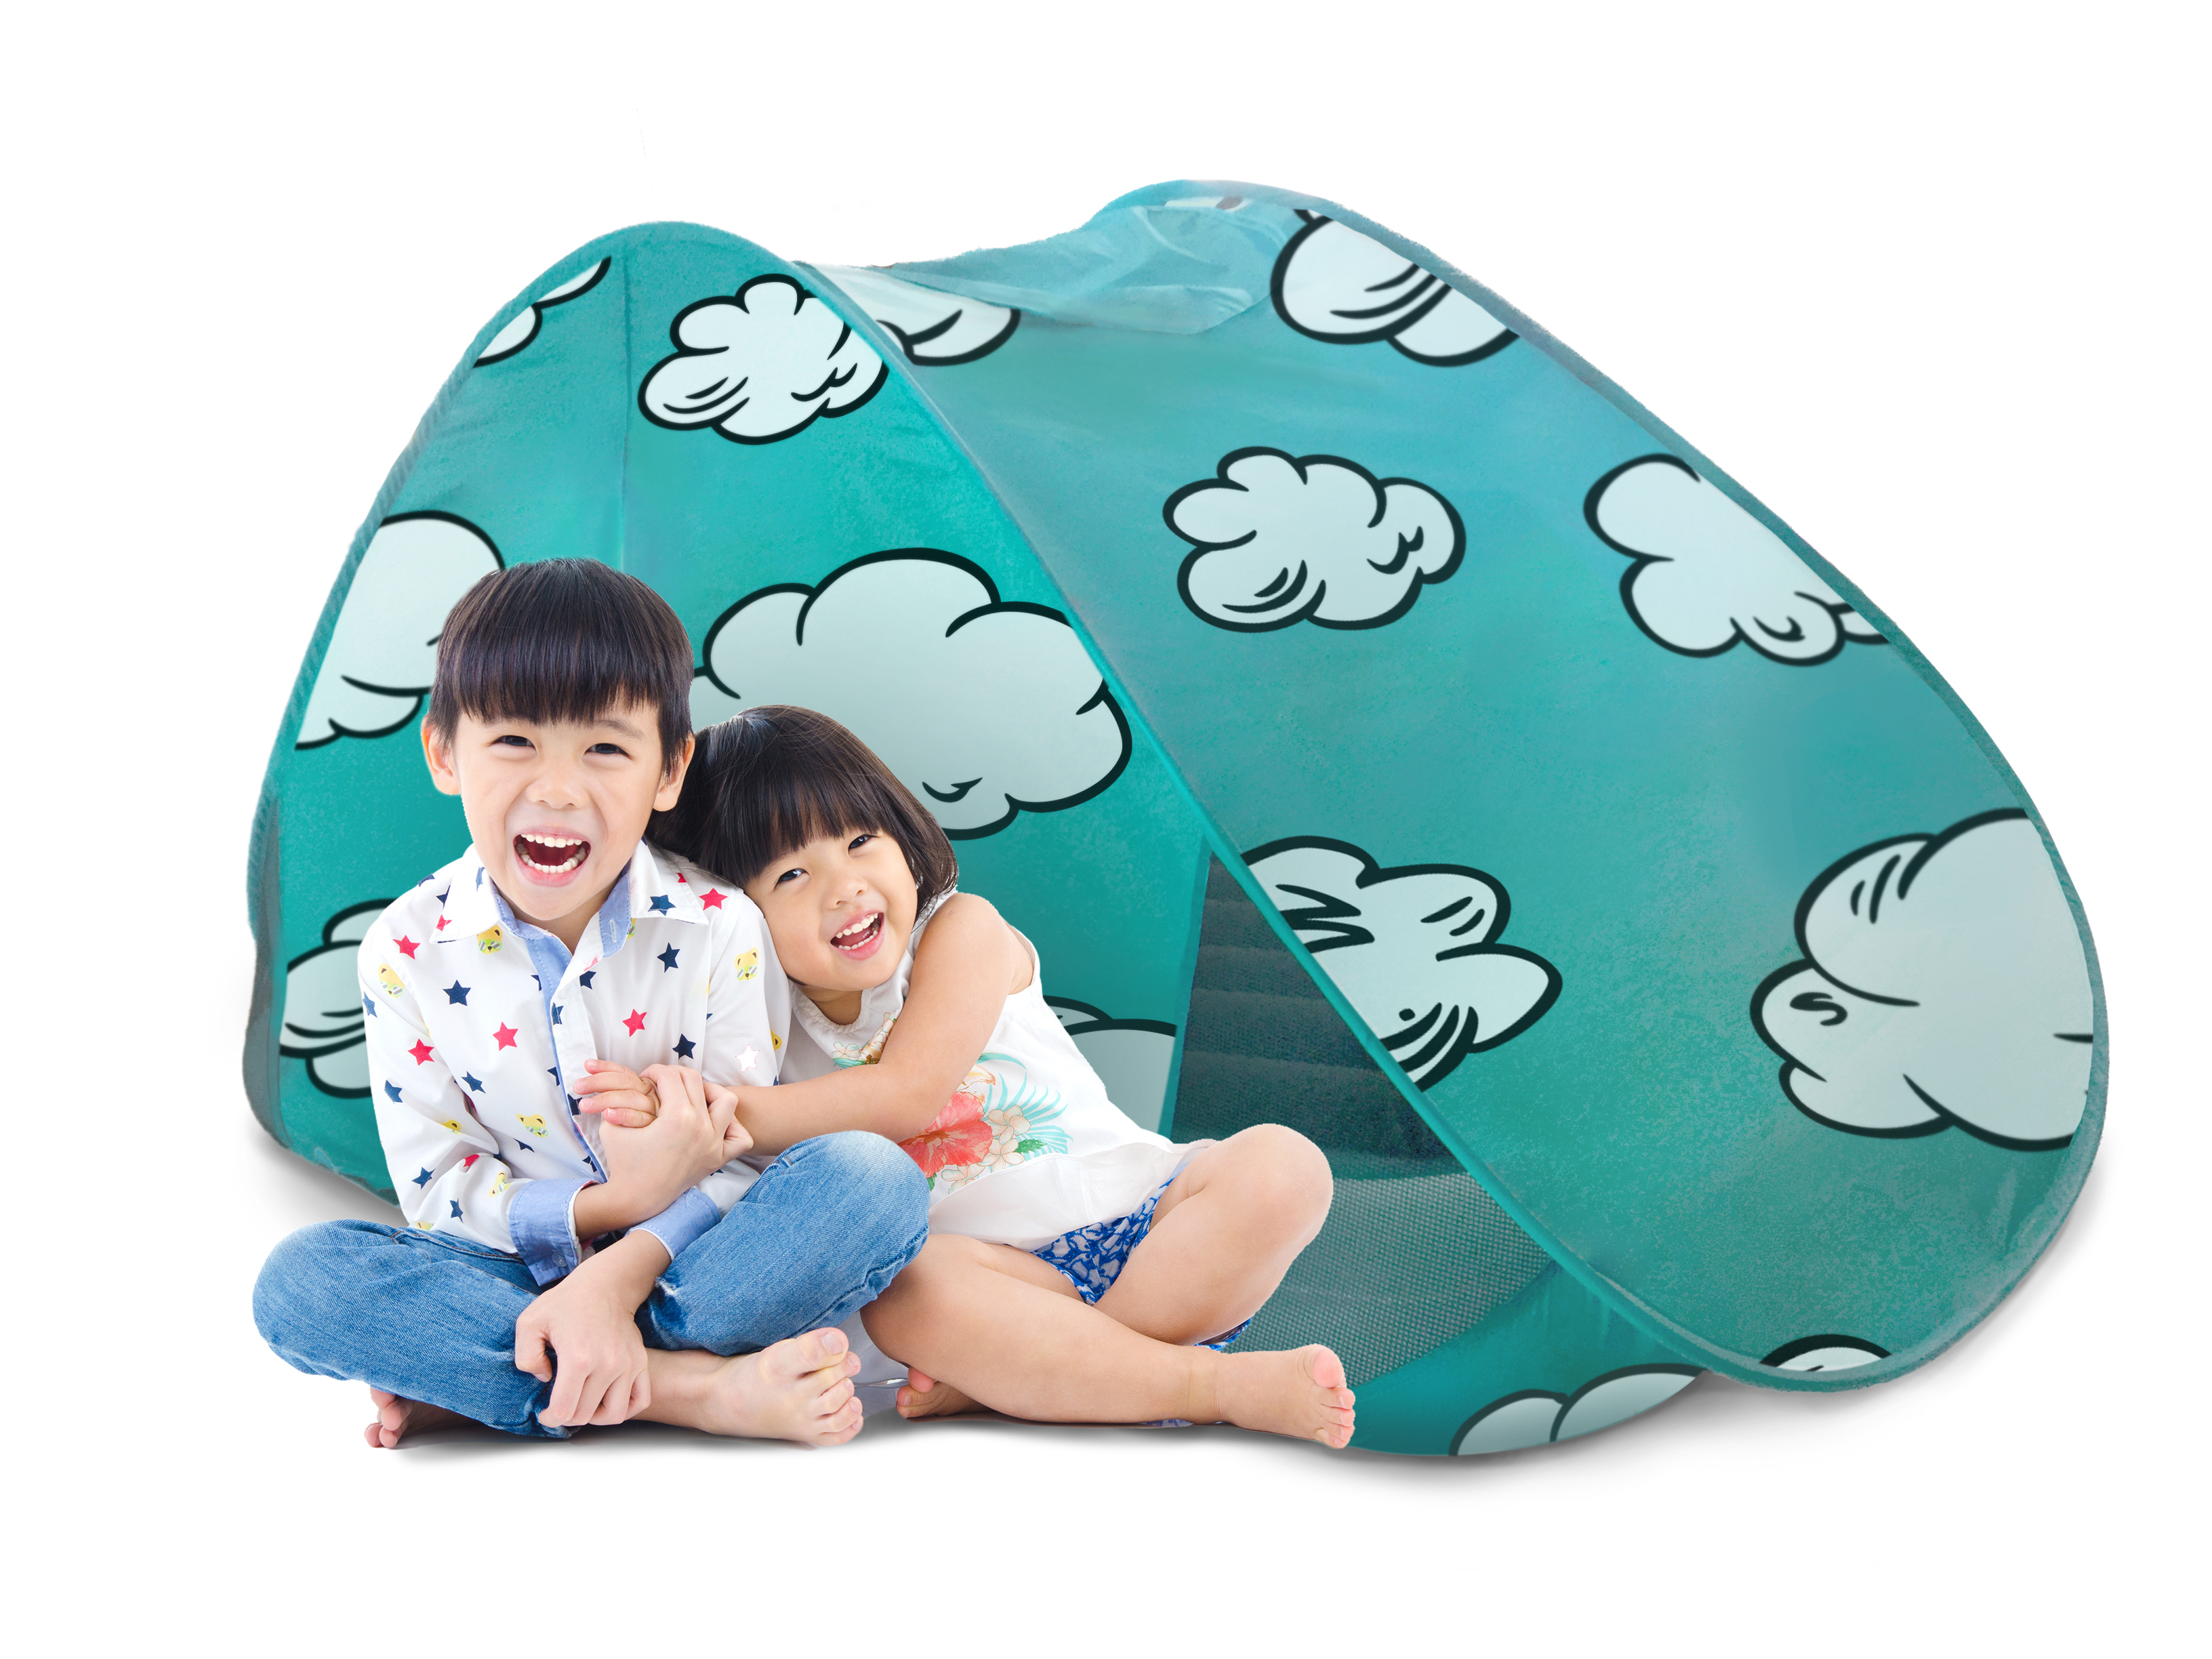 The Shrunks Indoor Toddler Bed Tent